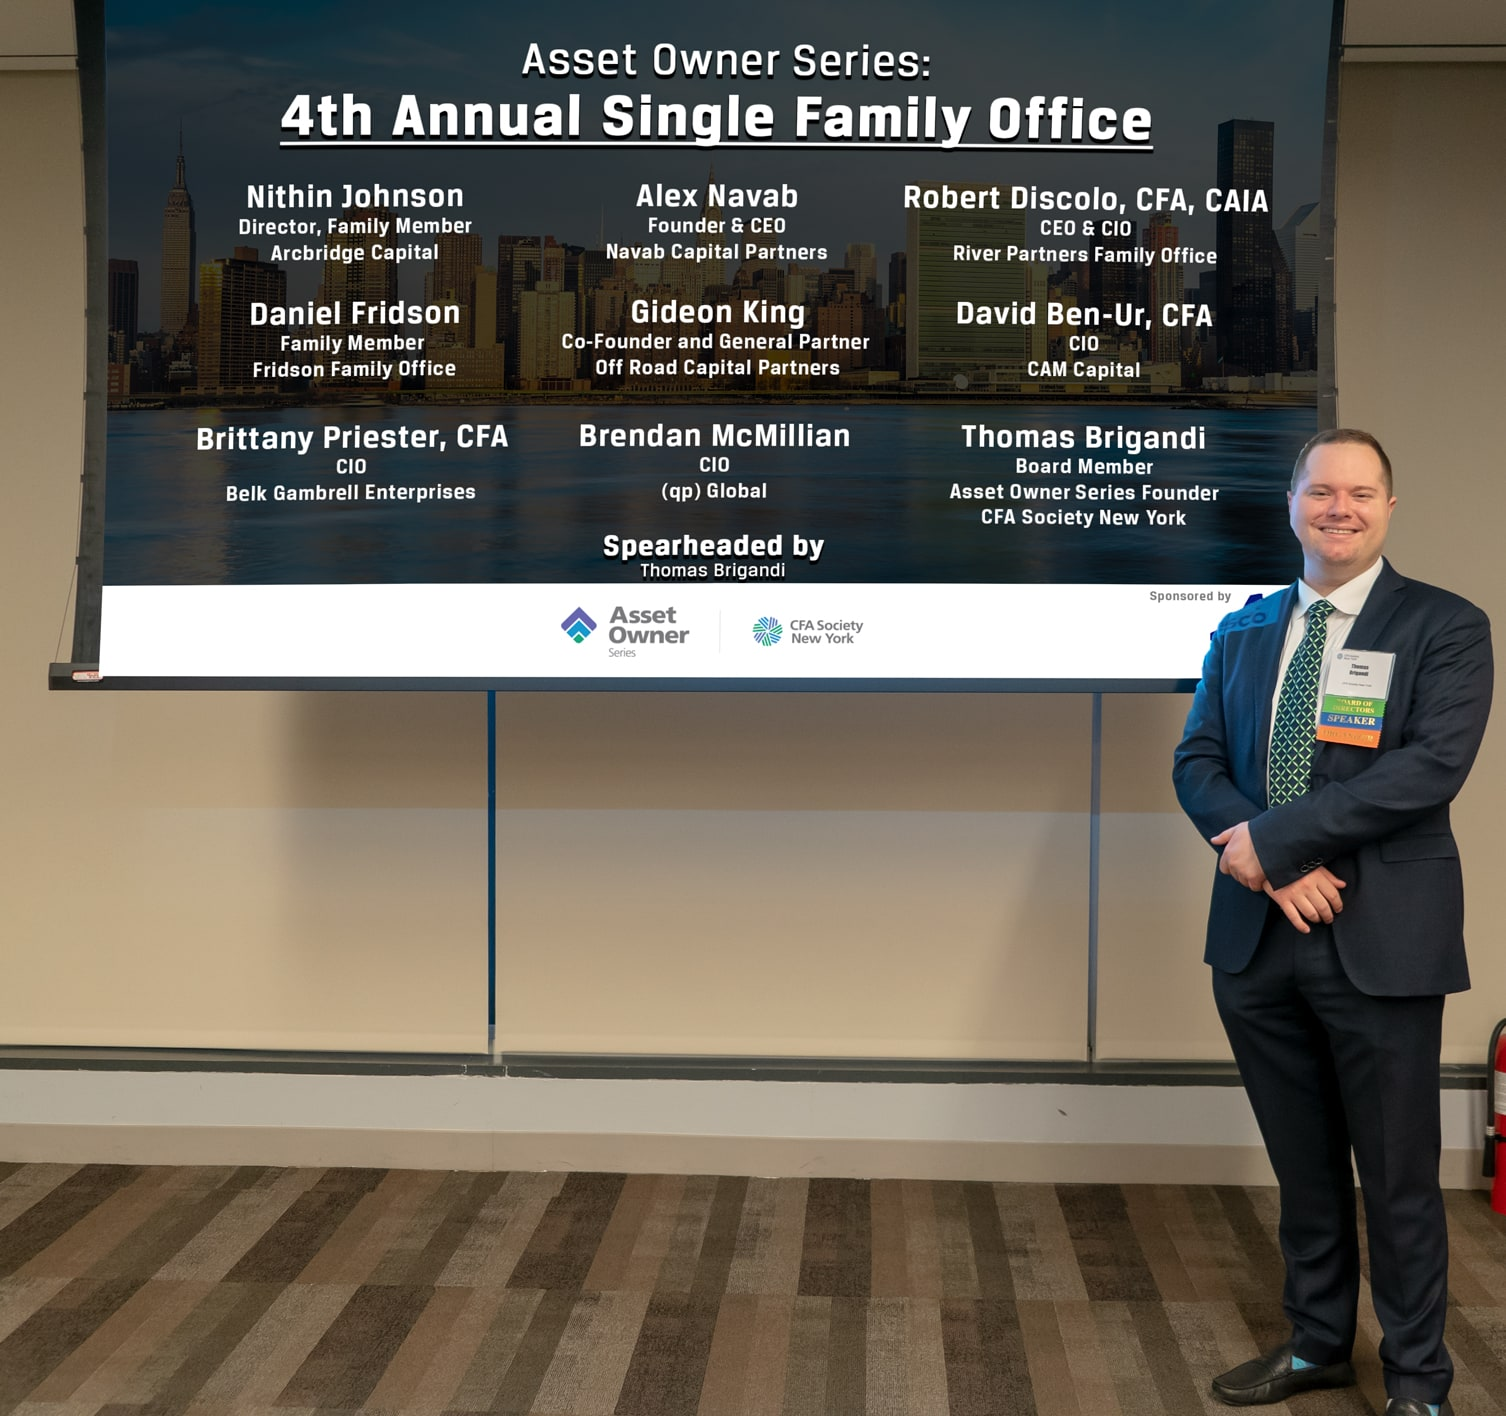 Asset Owner Series: 4th Annual Single Family Office » CFA